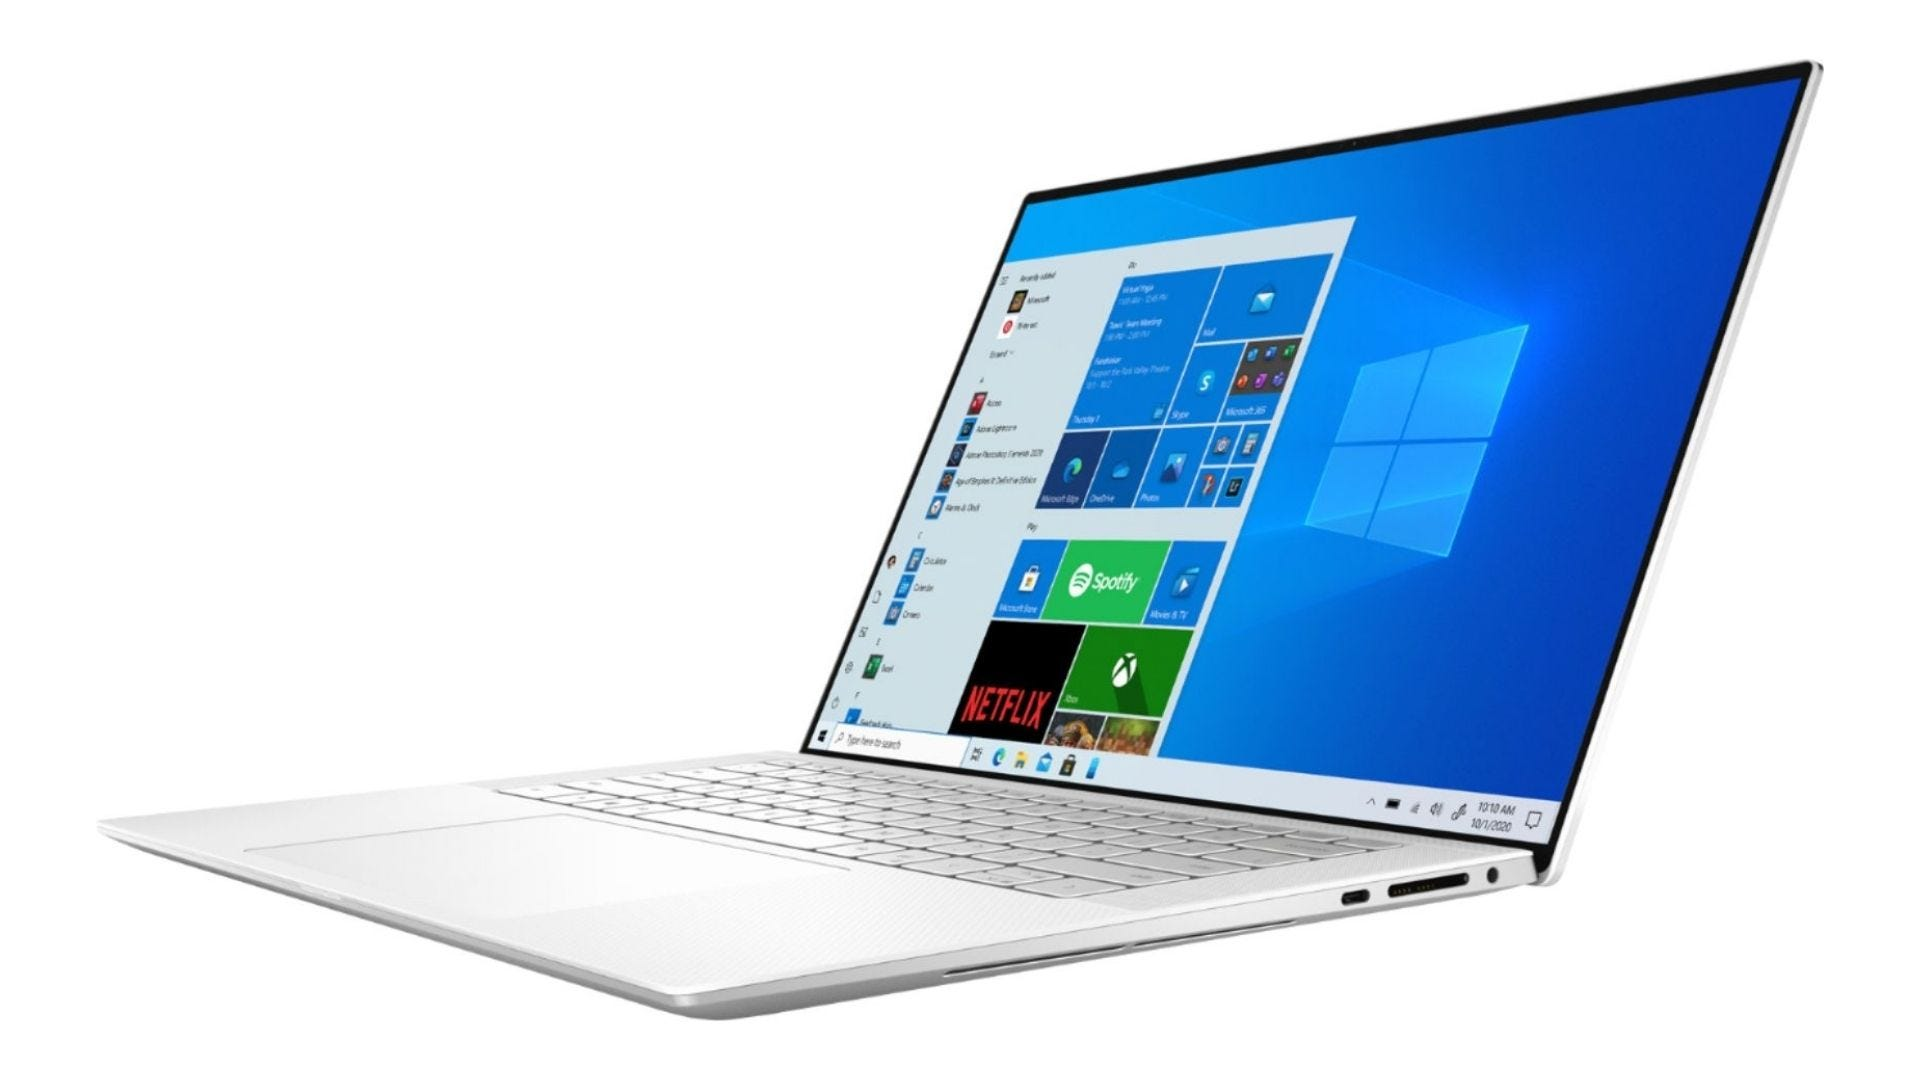 Dell - XPS 15 - 15.6 OLED Touch-Screen Laptop